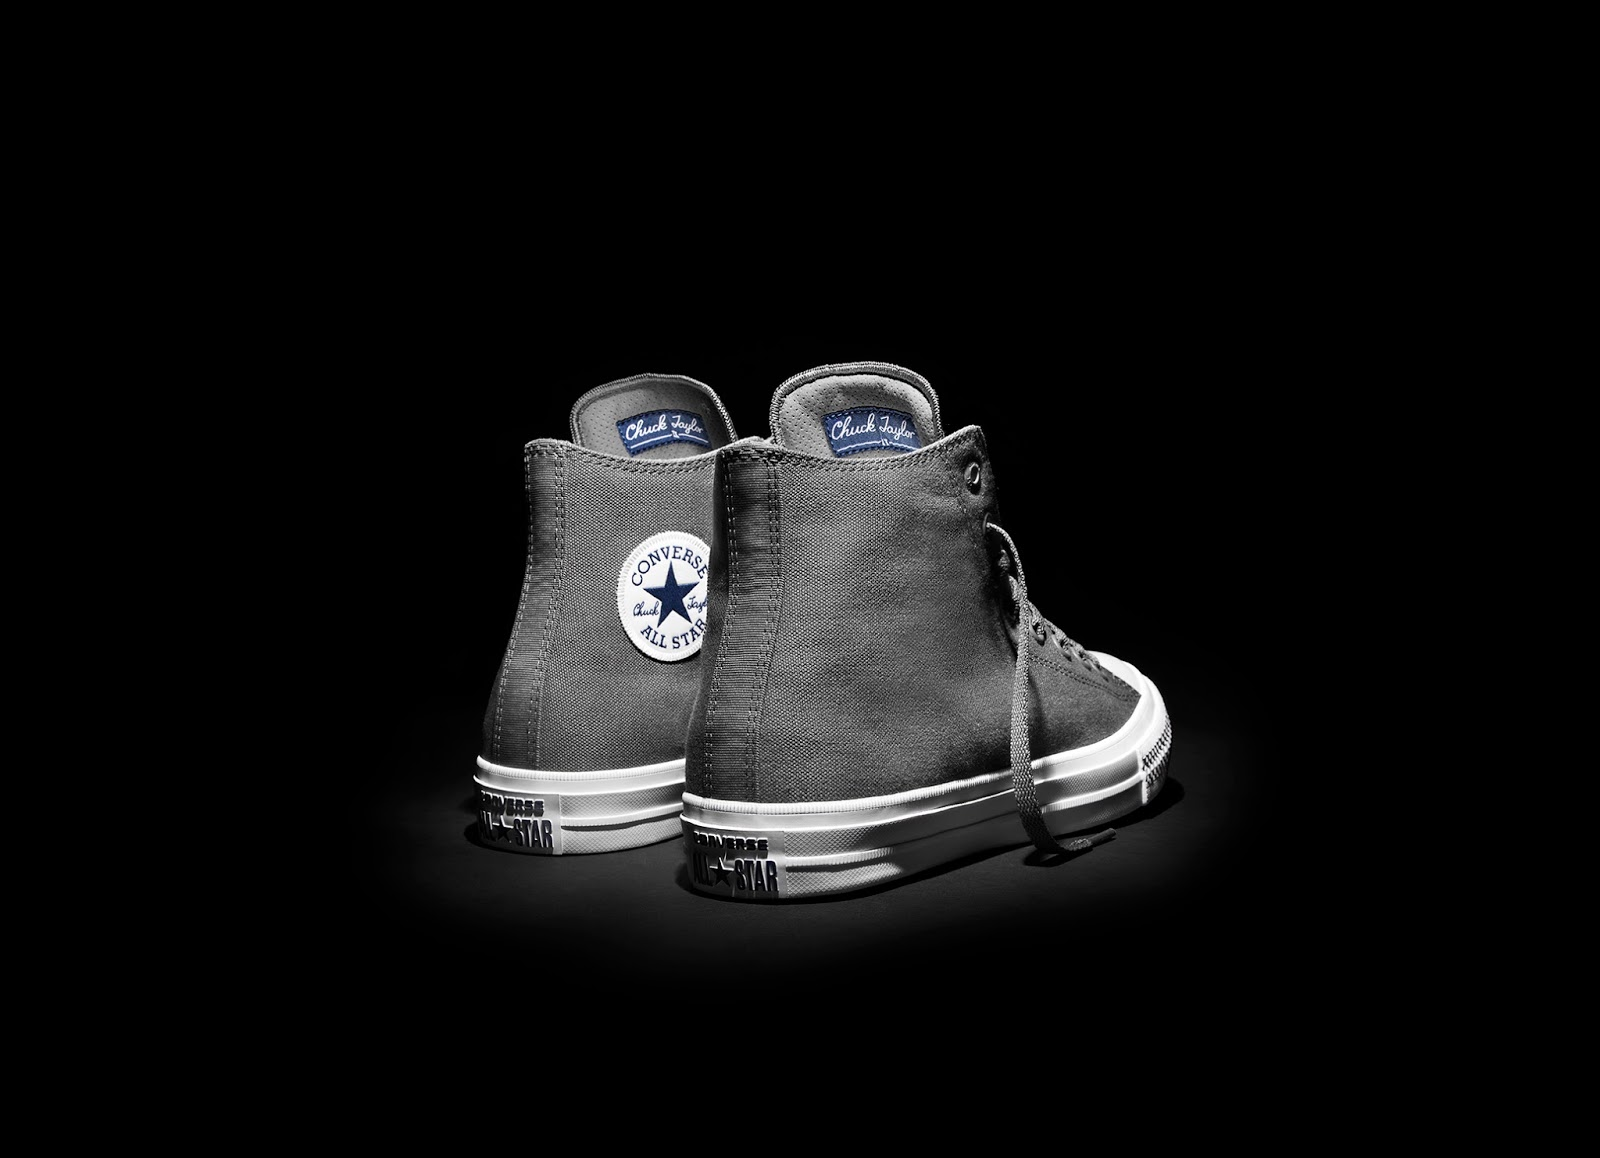 converse chuck taylor 2 philippines